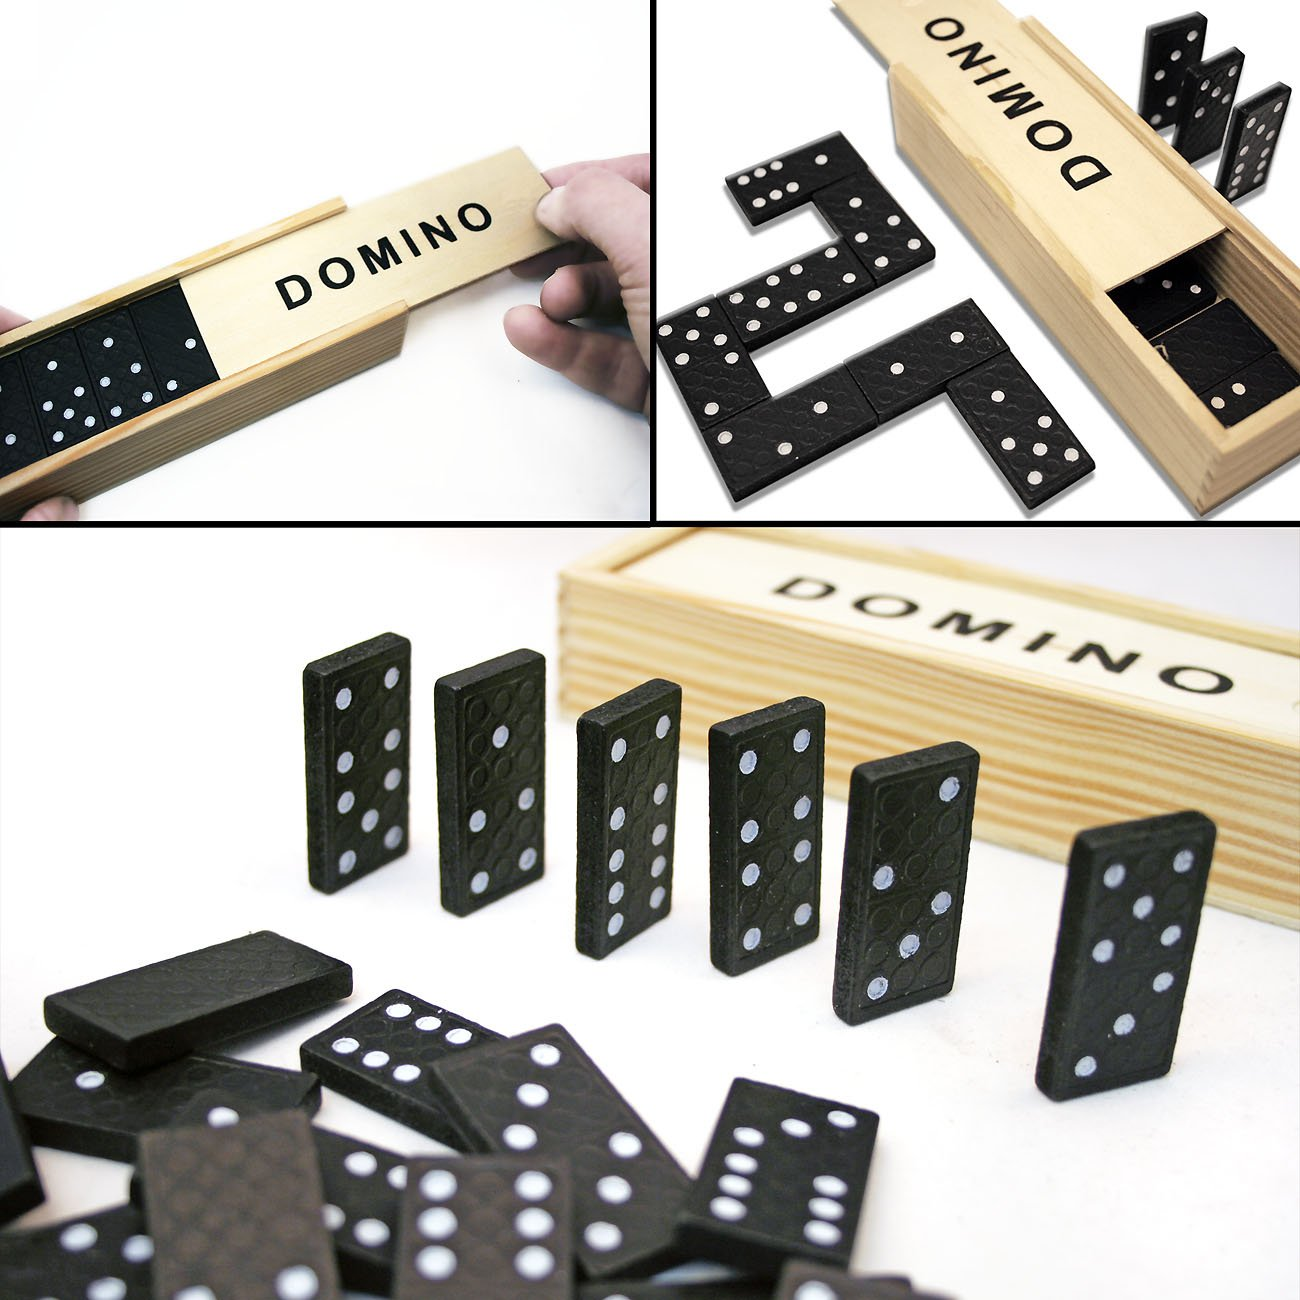 Playing Cards Classic Games For Corporate Games Evenings Cube Dice Cup Home Tools EU 4/Games Collection Domino Mikado Domino and Mikado with Wood Box Set of 4